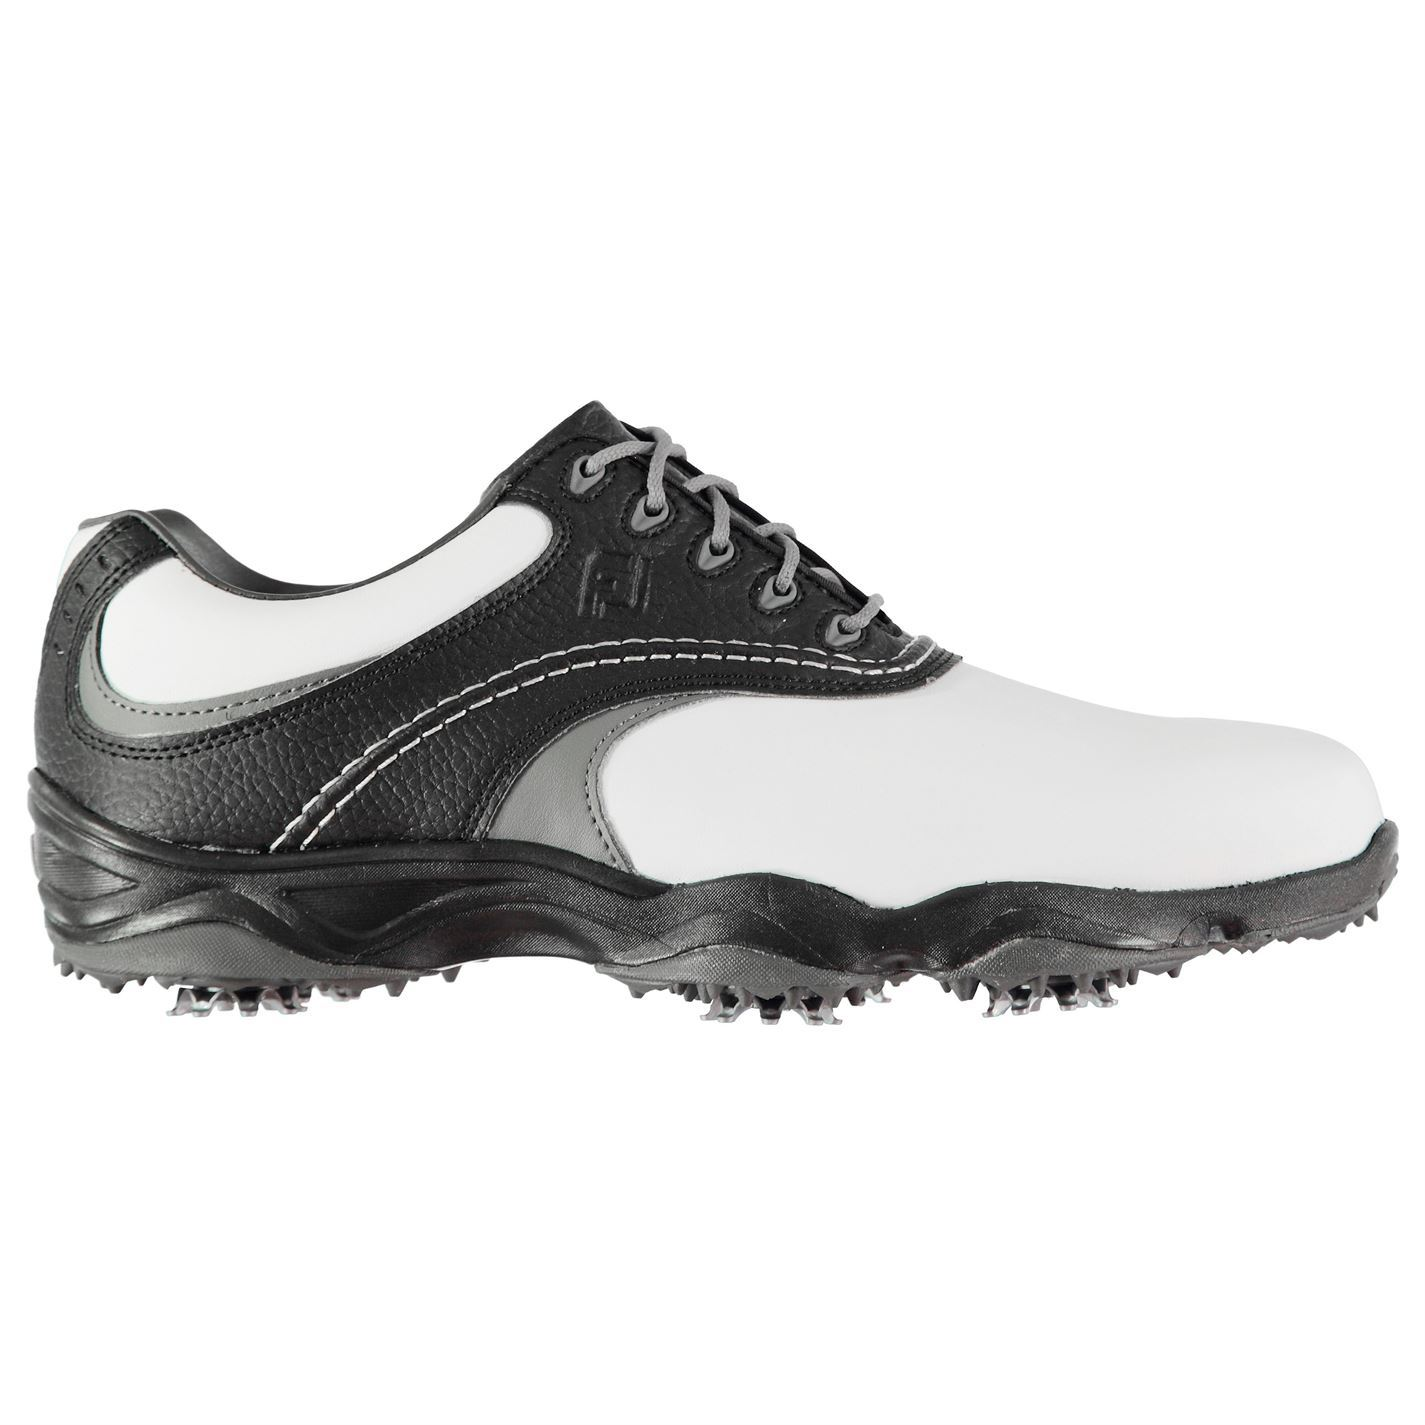 Footjoy-Originals-Golf-Shoes-Mens-Spikes-Footwear thumbnail 18